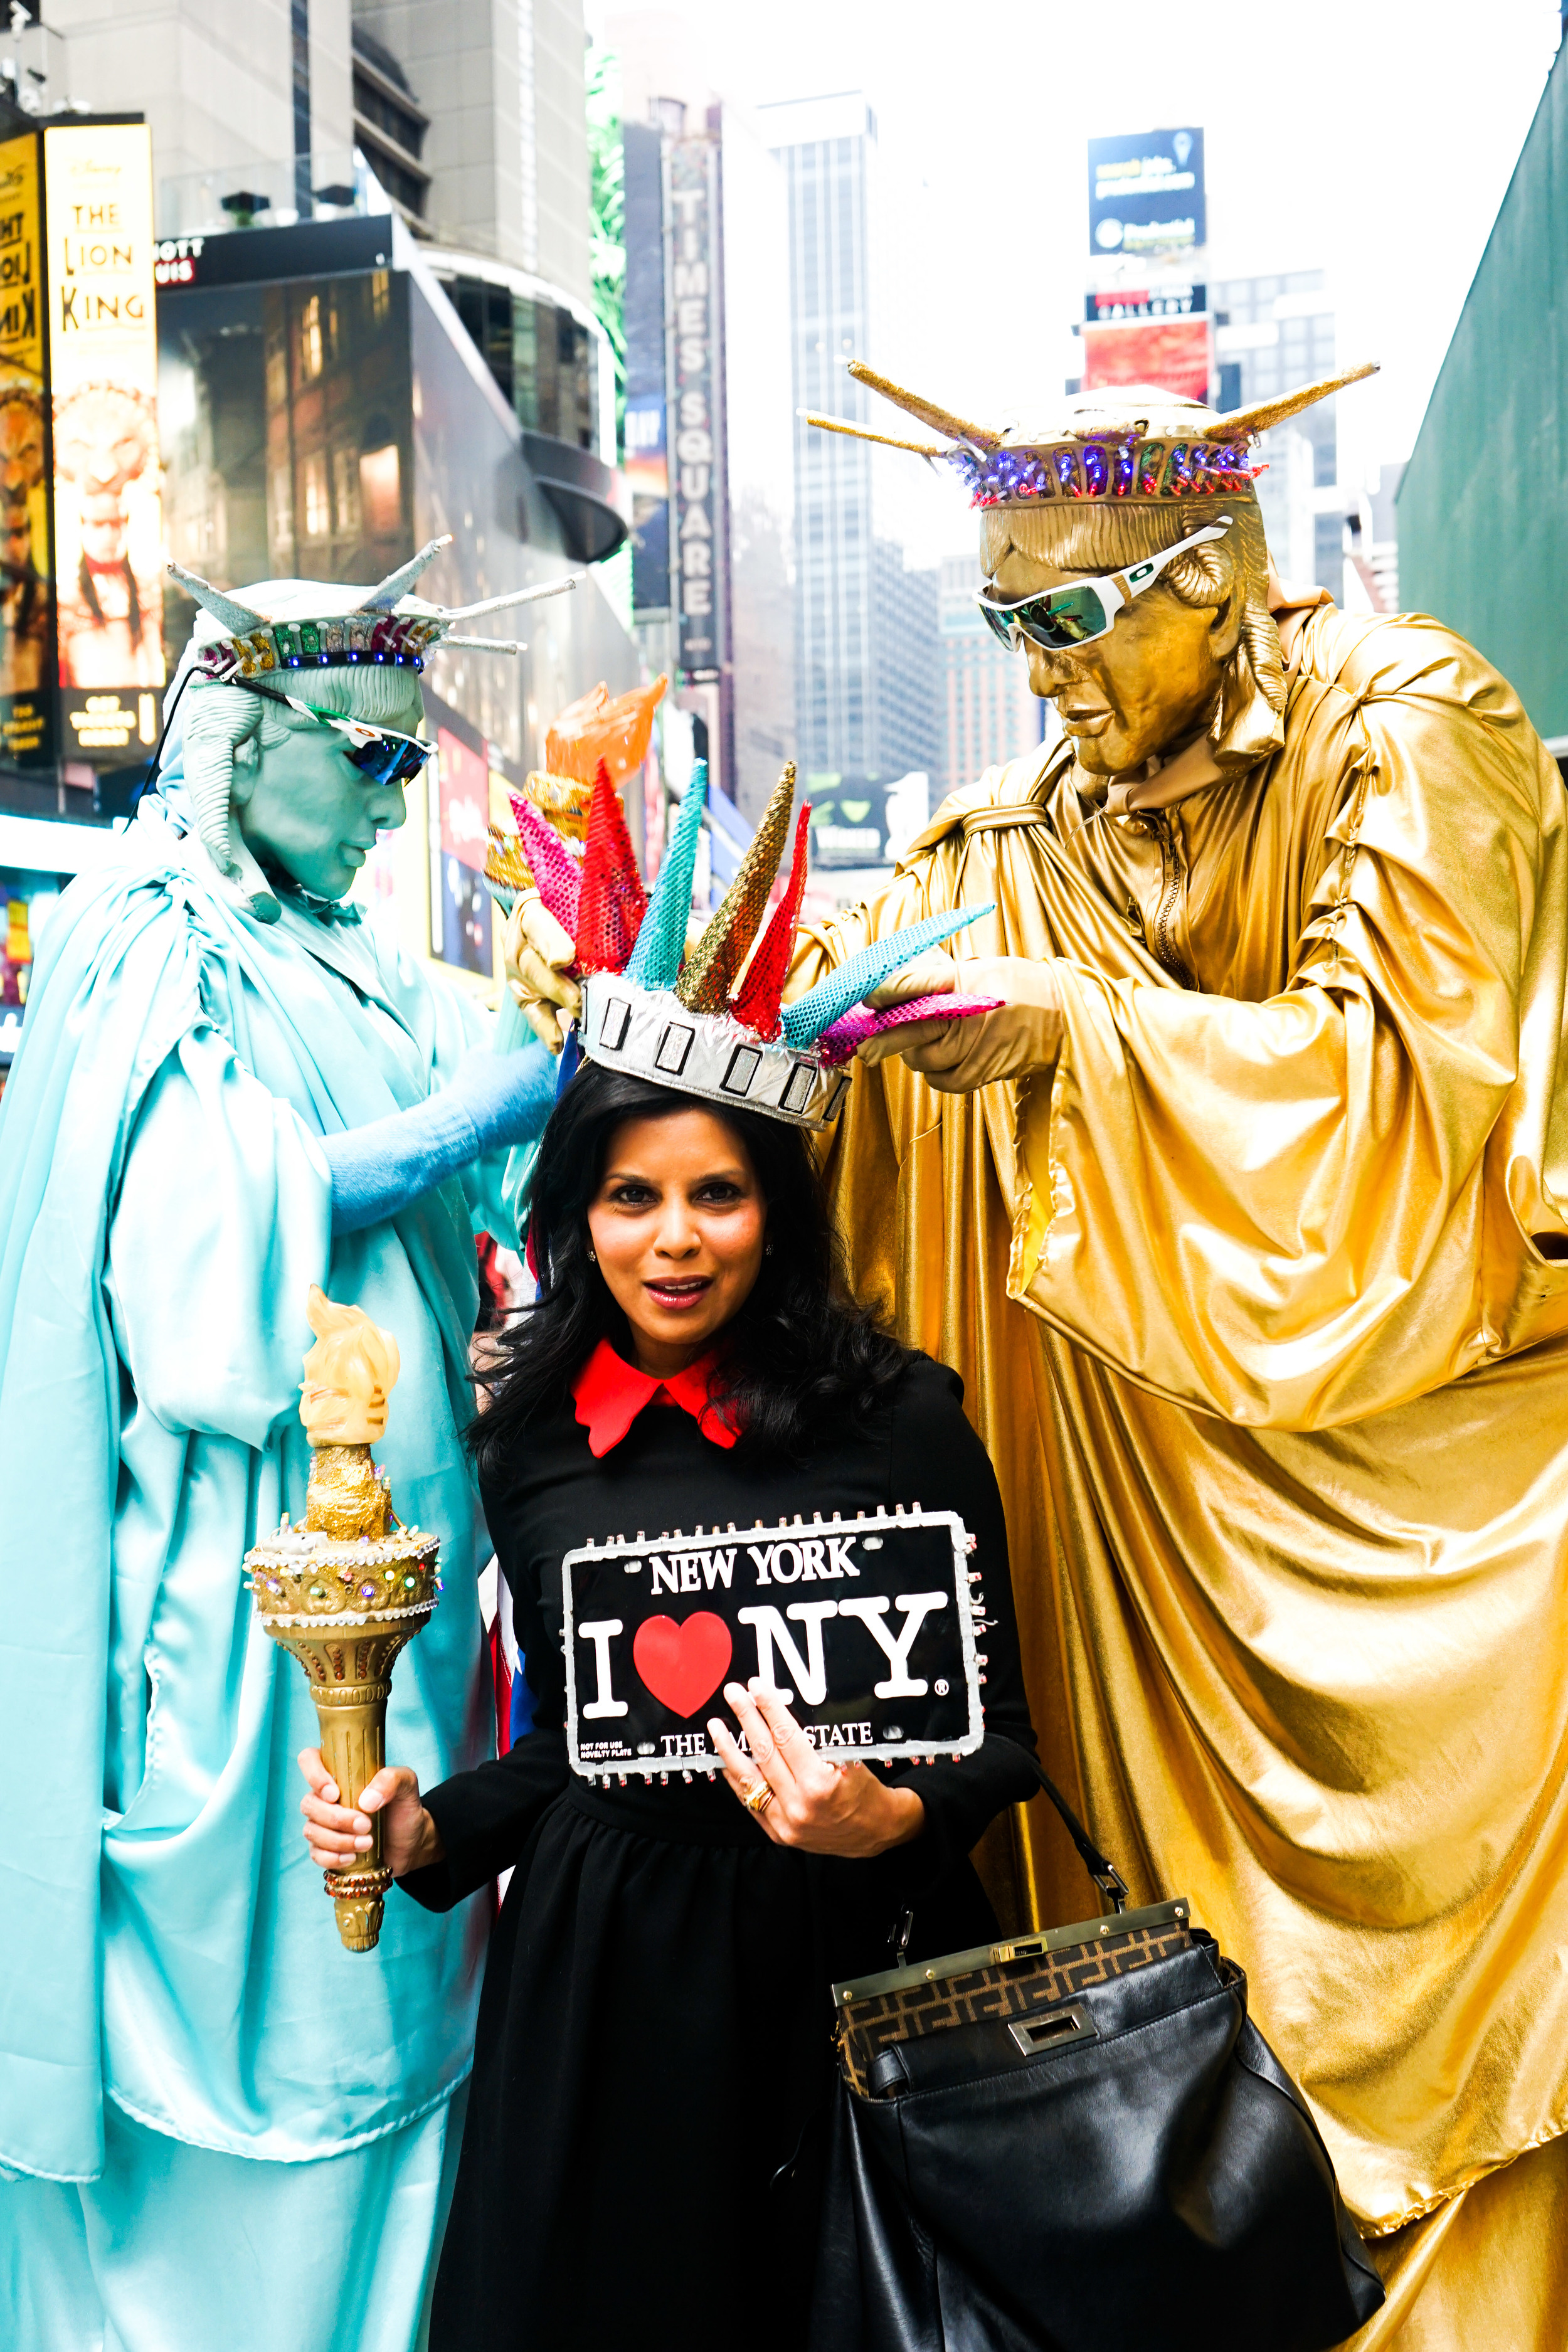 Hitha Herzog in Times Square wearing an inflatable Statue of Liberty crown, holding an inflatable Statue of Liberty Torch, surrounded by two street performers dressed as Statue of Liberties.